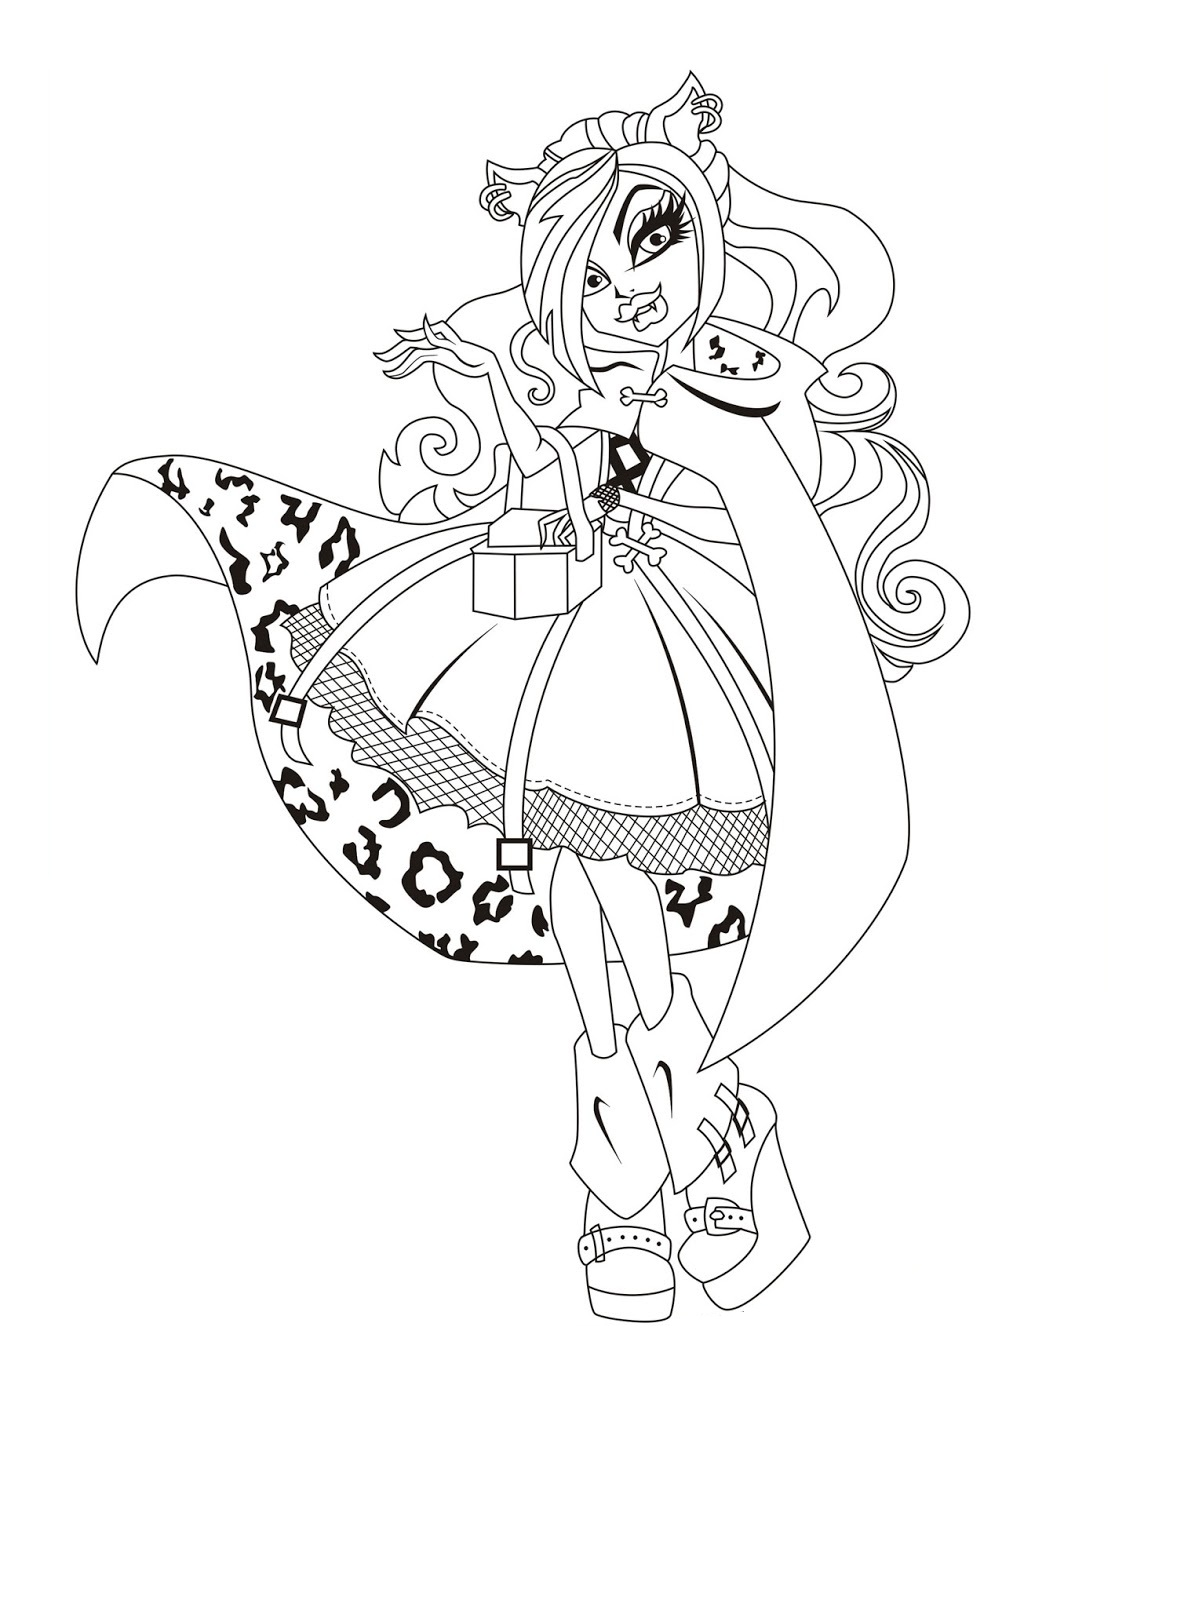 Monster High Ausmalbilder Draculaura Und Clawd : Free Printable Monster High Coloring Pages For Kids